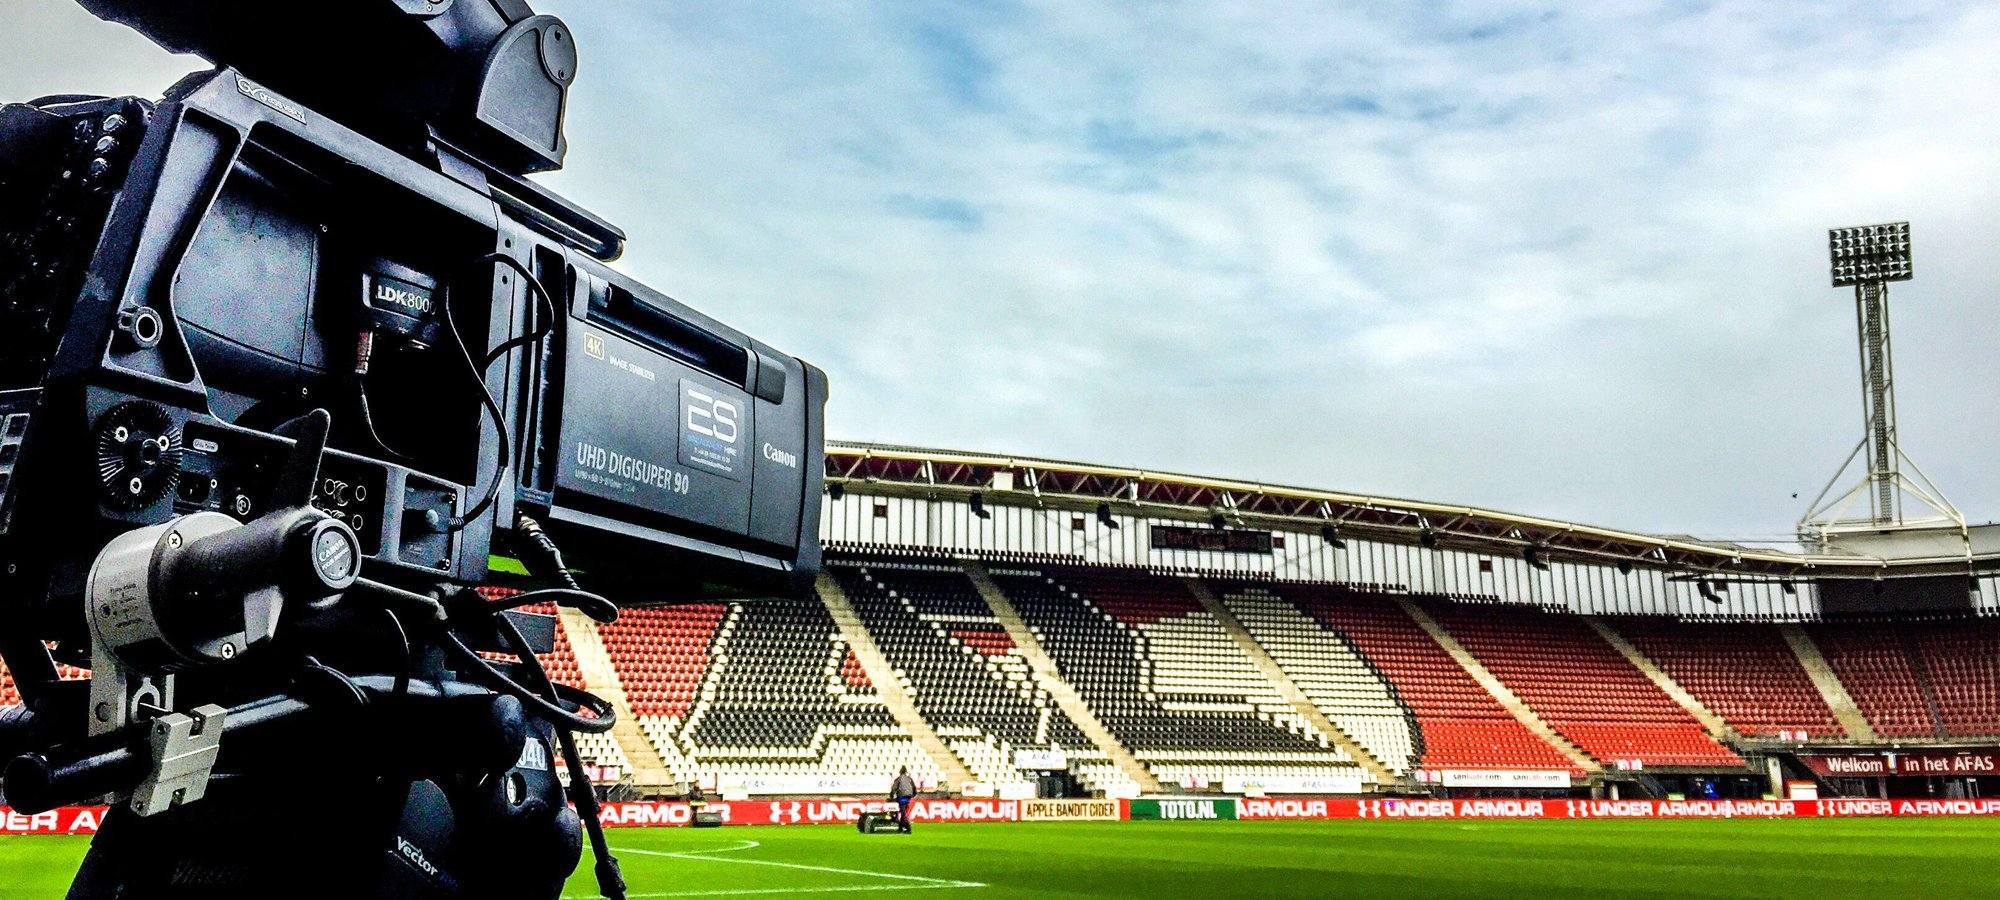 Canon UHD lenses covering the Dutch KNVB Cup quarter-final between AZ Alkmaar and Zwolle